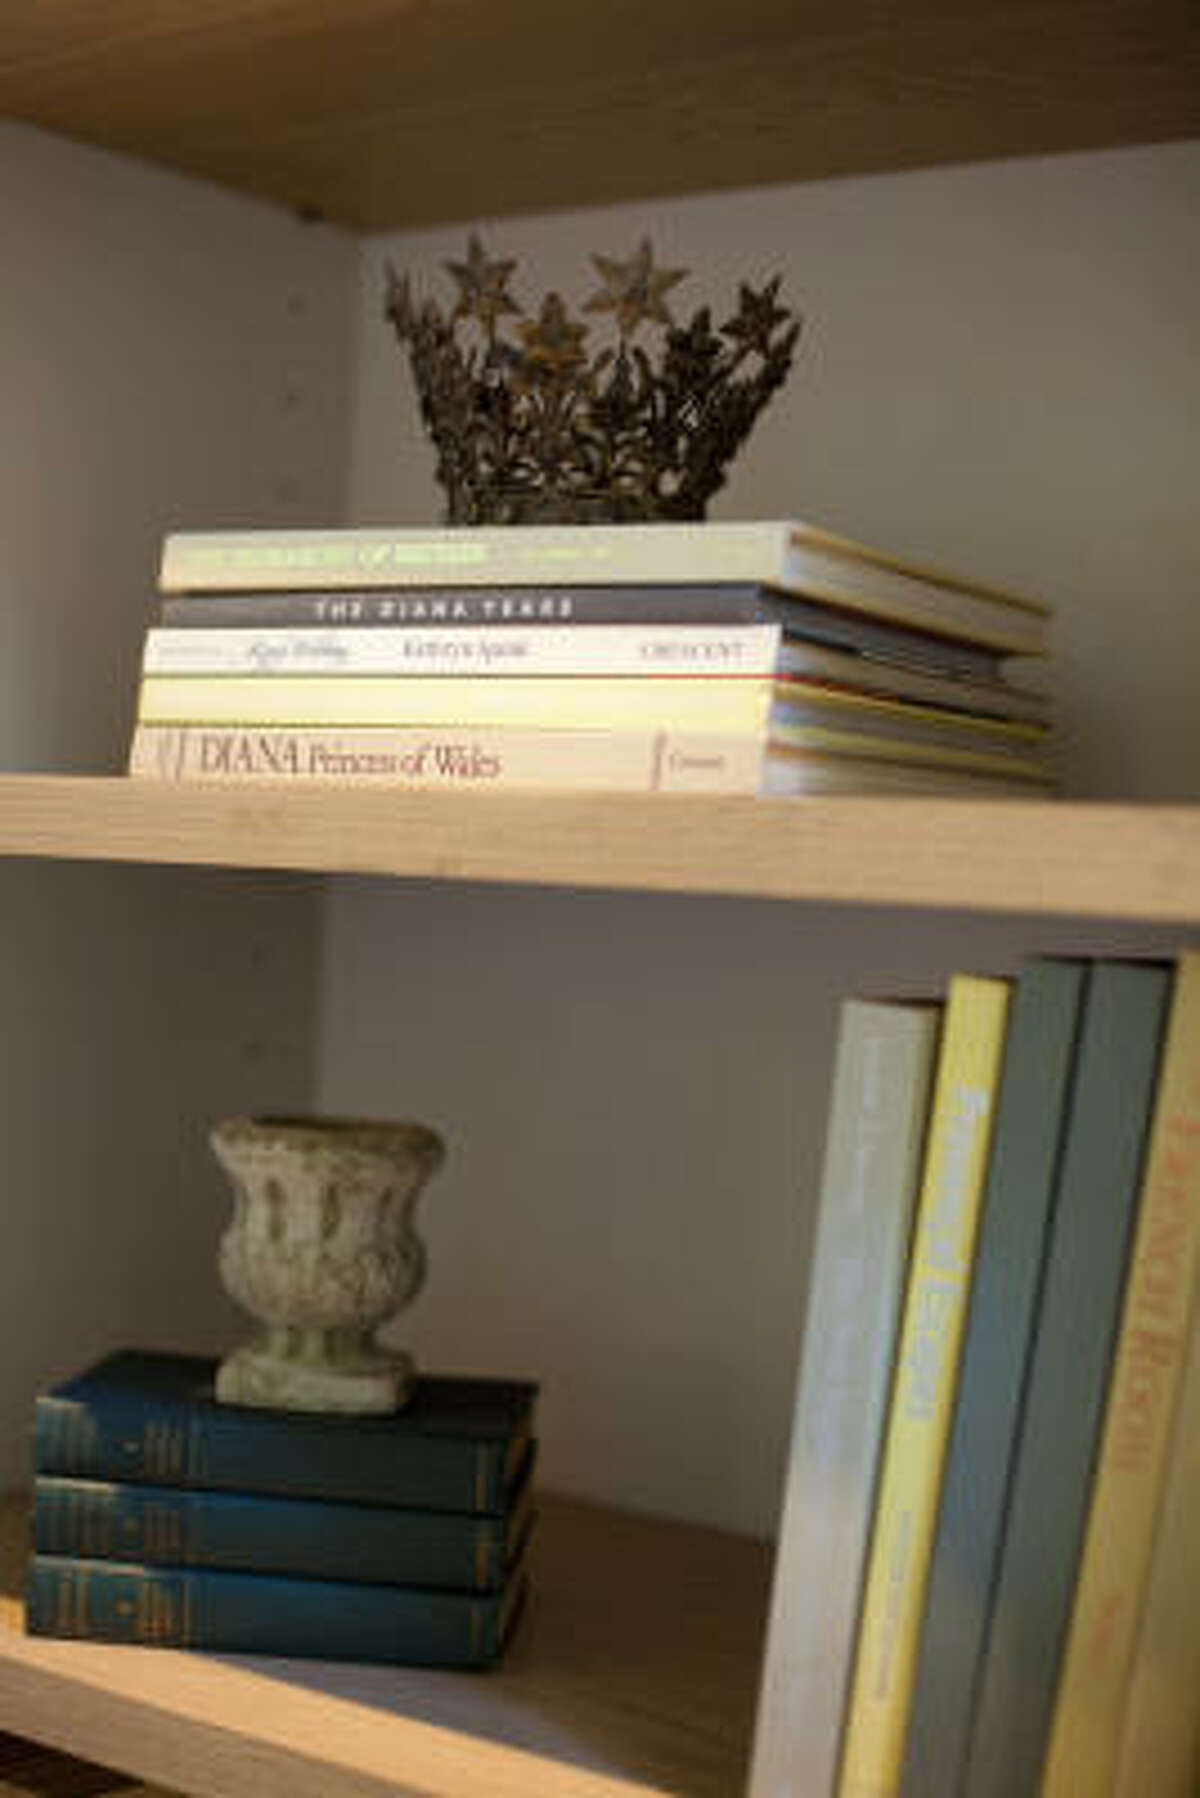 Family keepsakes and books are displayed in the living room.